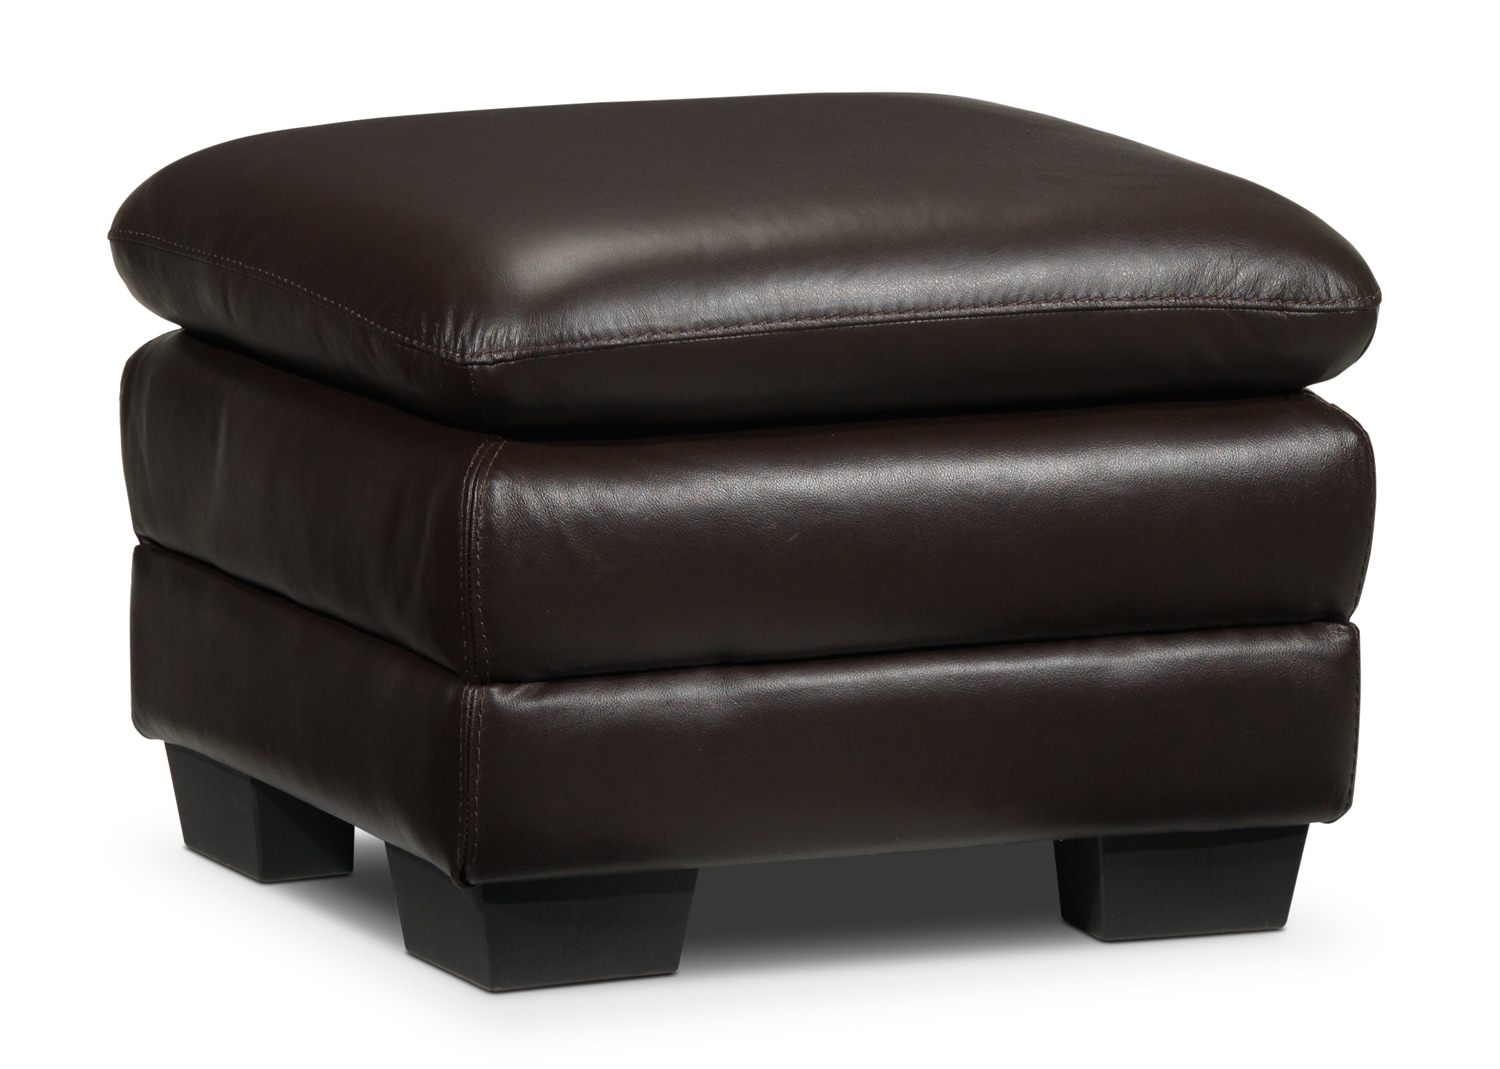 Living Room Furniture - Rodero Ottoman - Brown